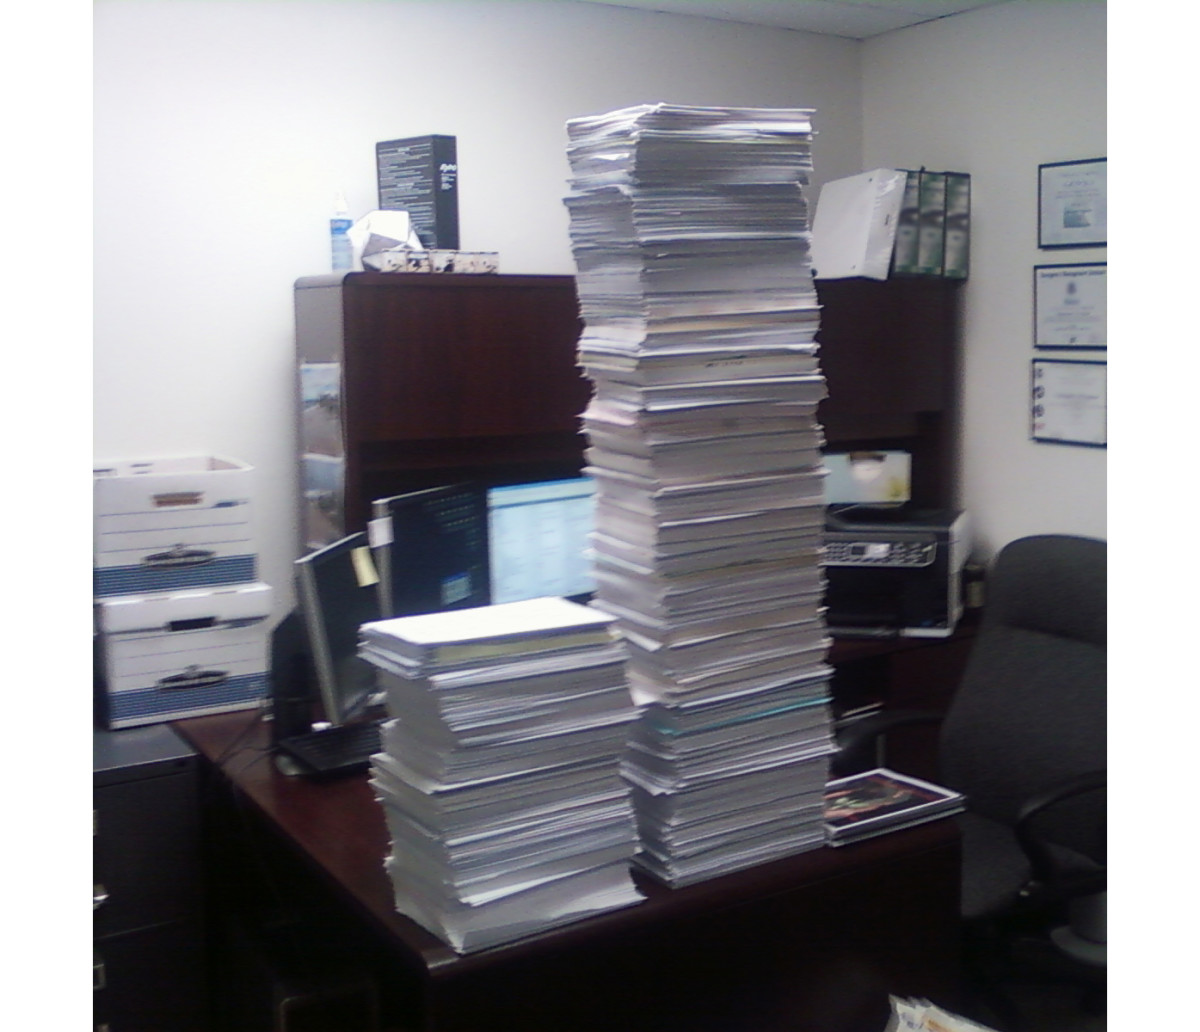 An actual stack of paper from my desk around 8 years ago.